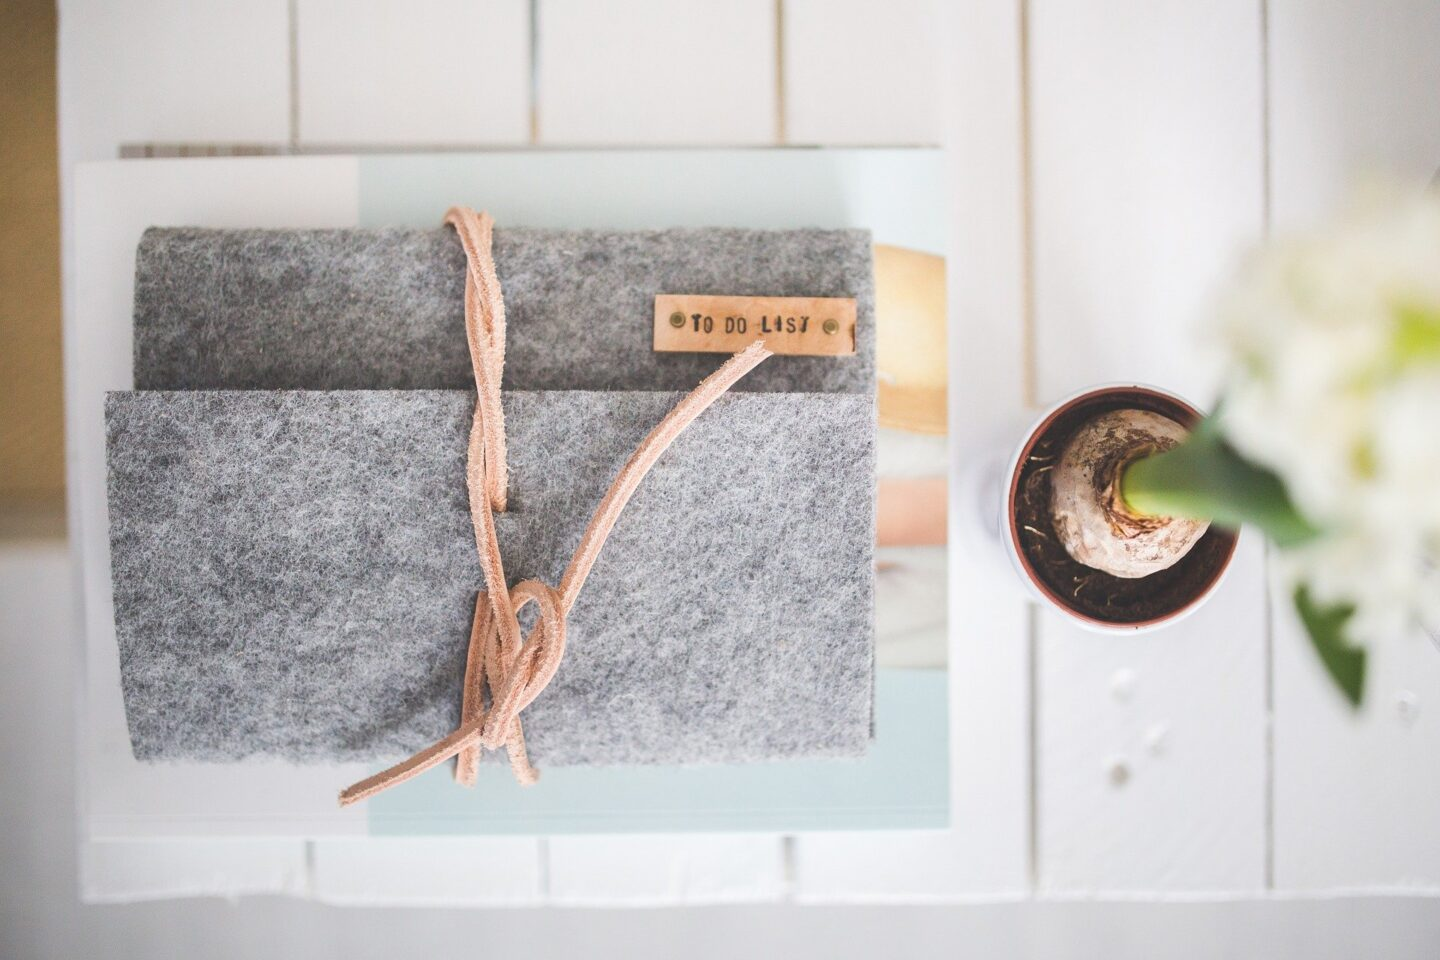 Moving Back to Normal – Fixing Big and Small Tasks in Your Home